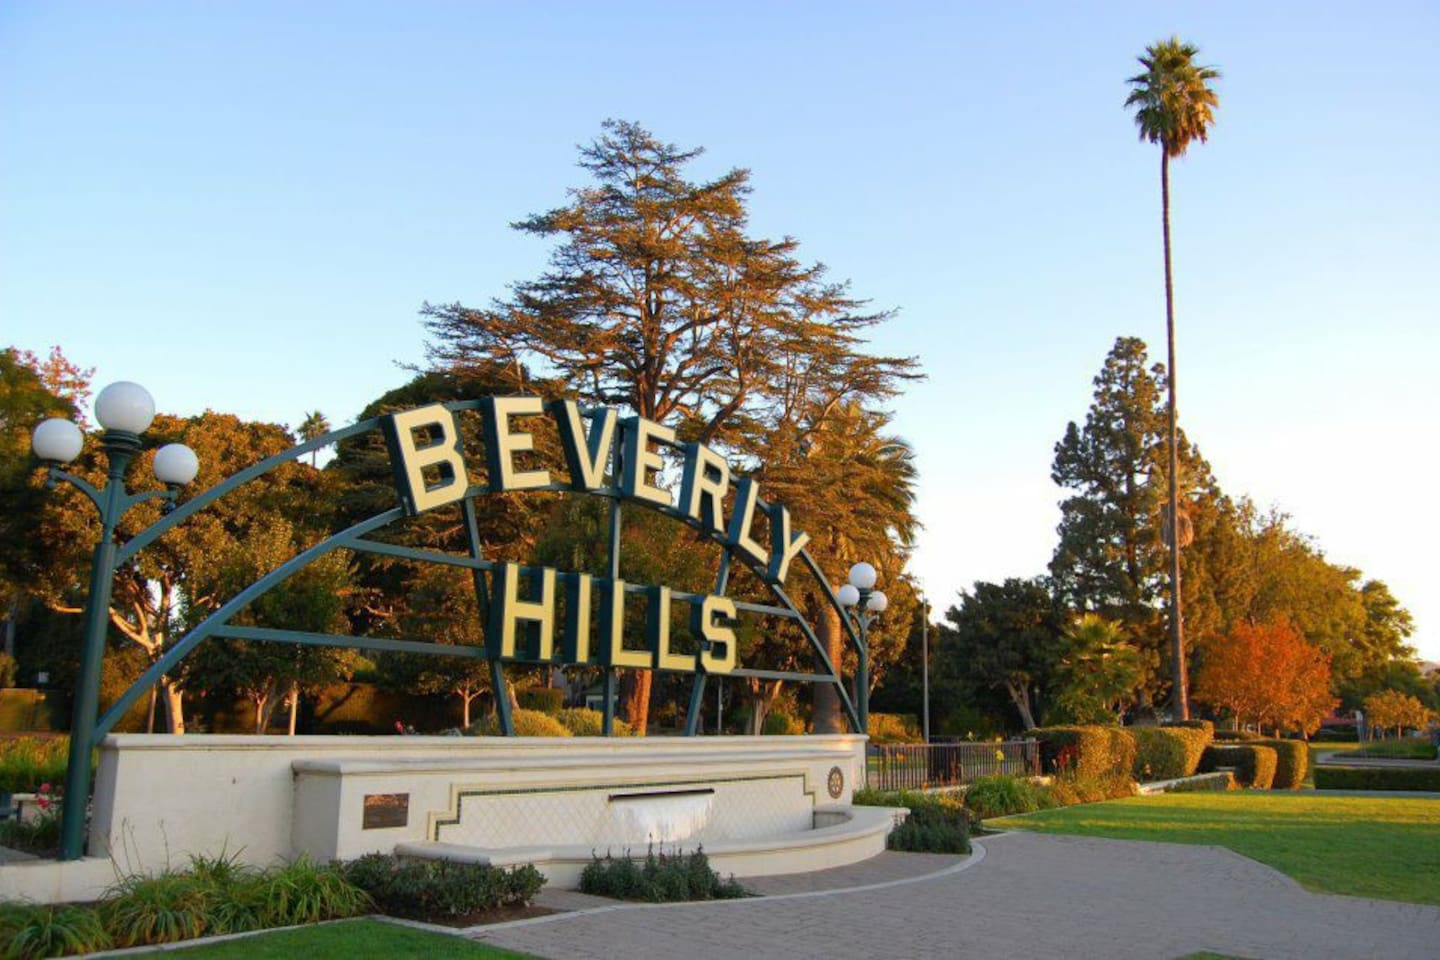 Beverly Hills 7 minutes away